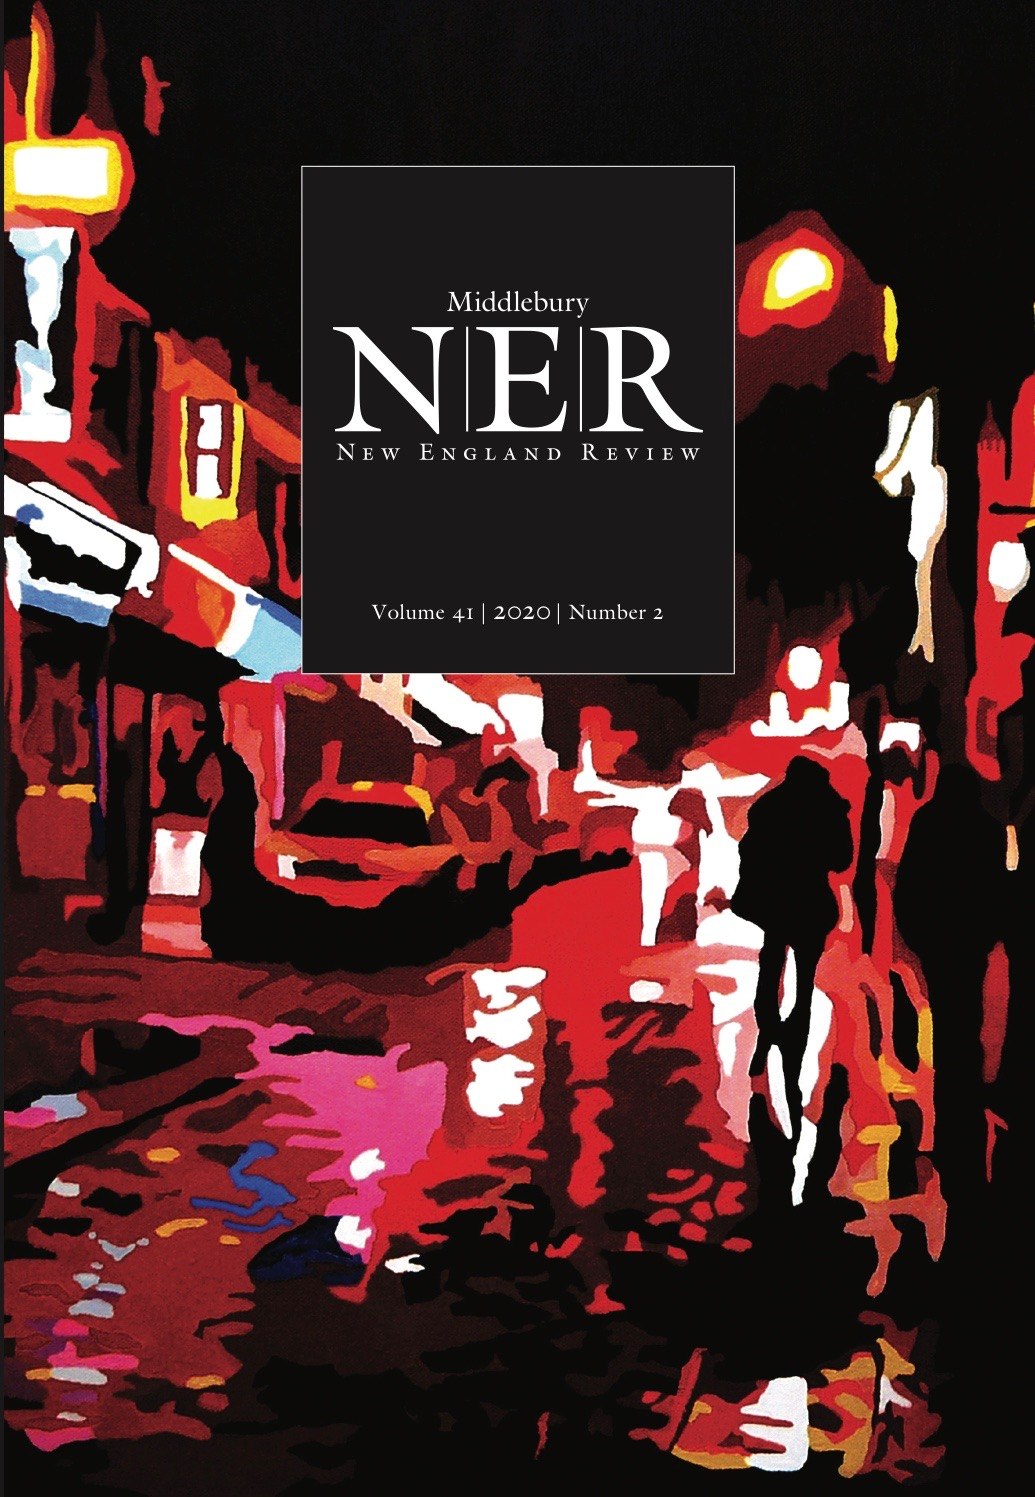 New England Review: Volume 41, Number 2, 2020